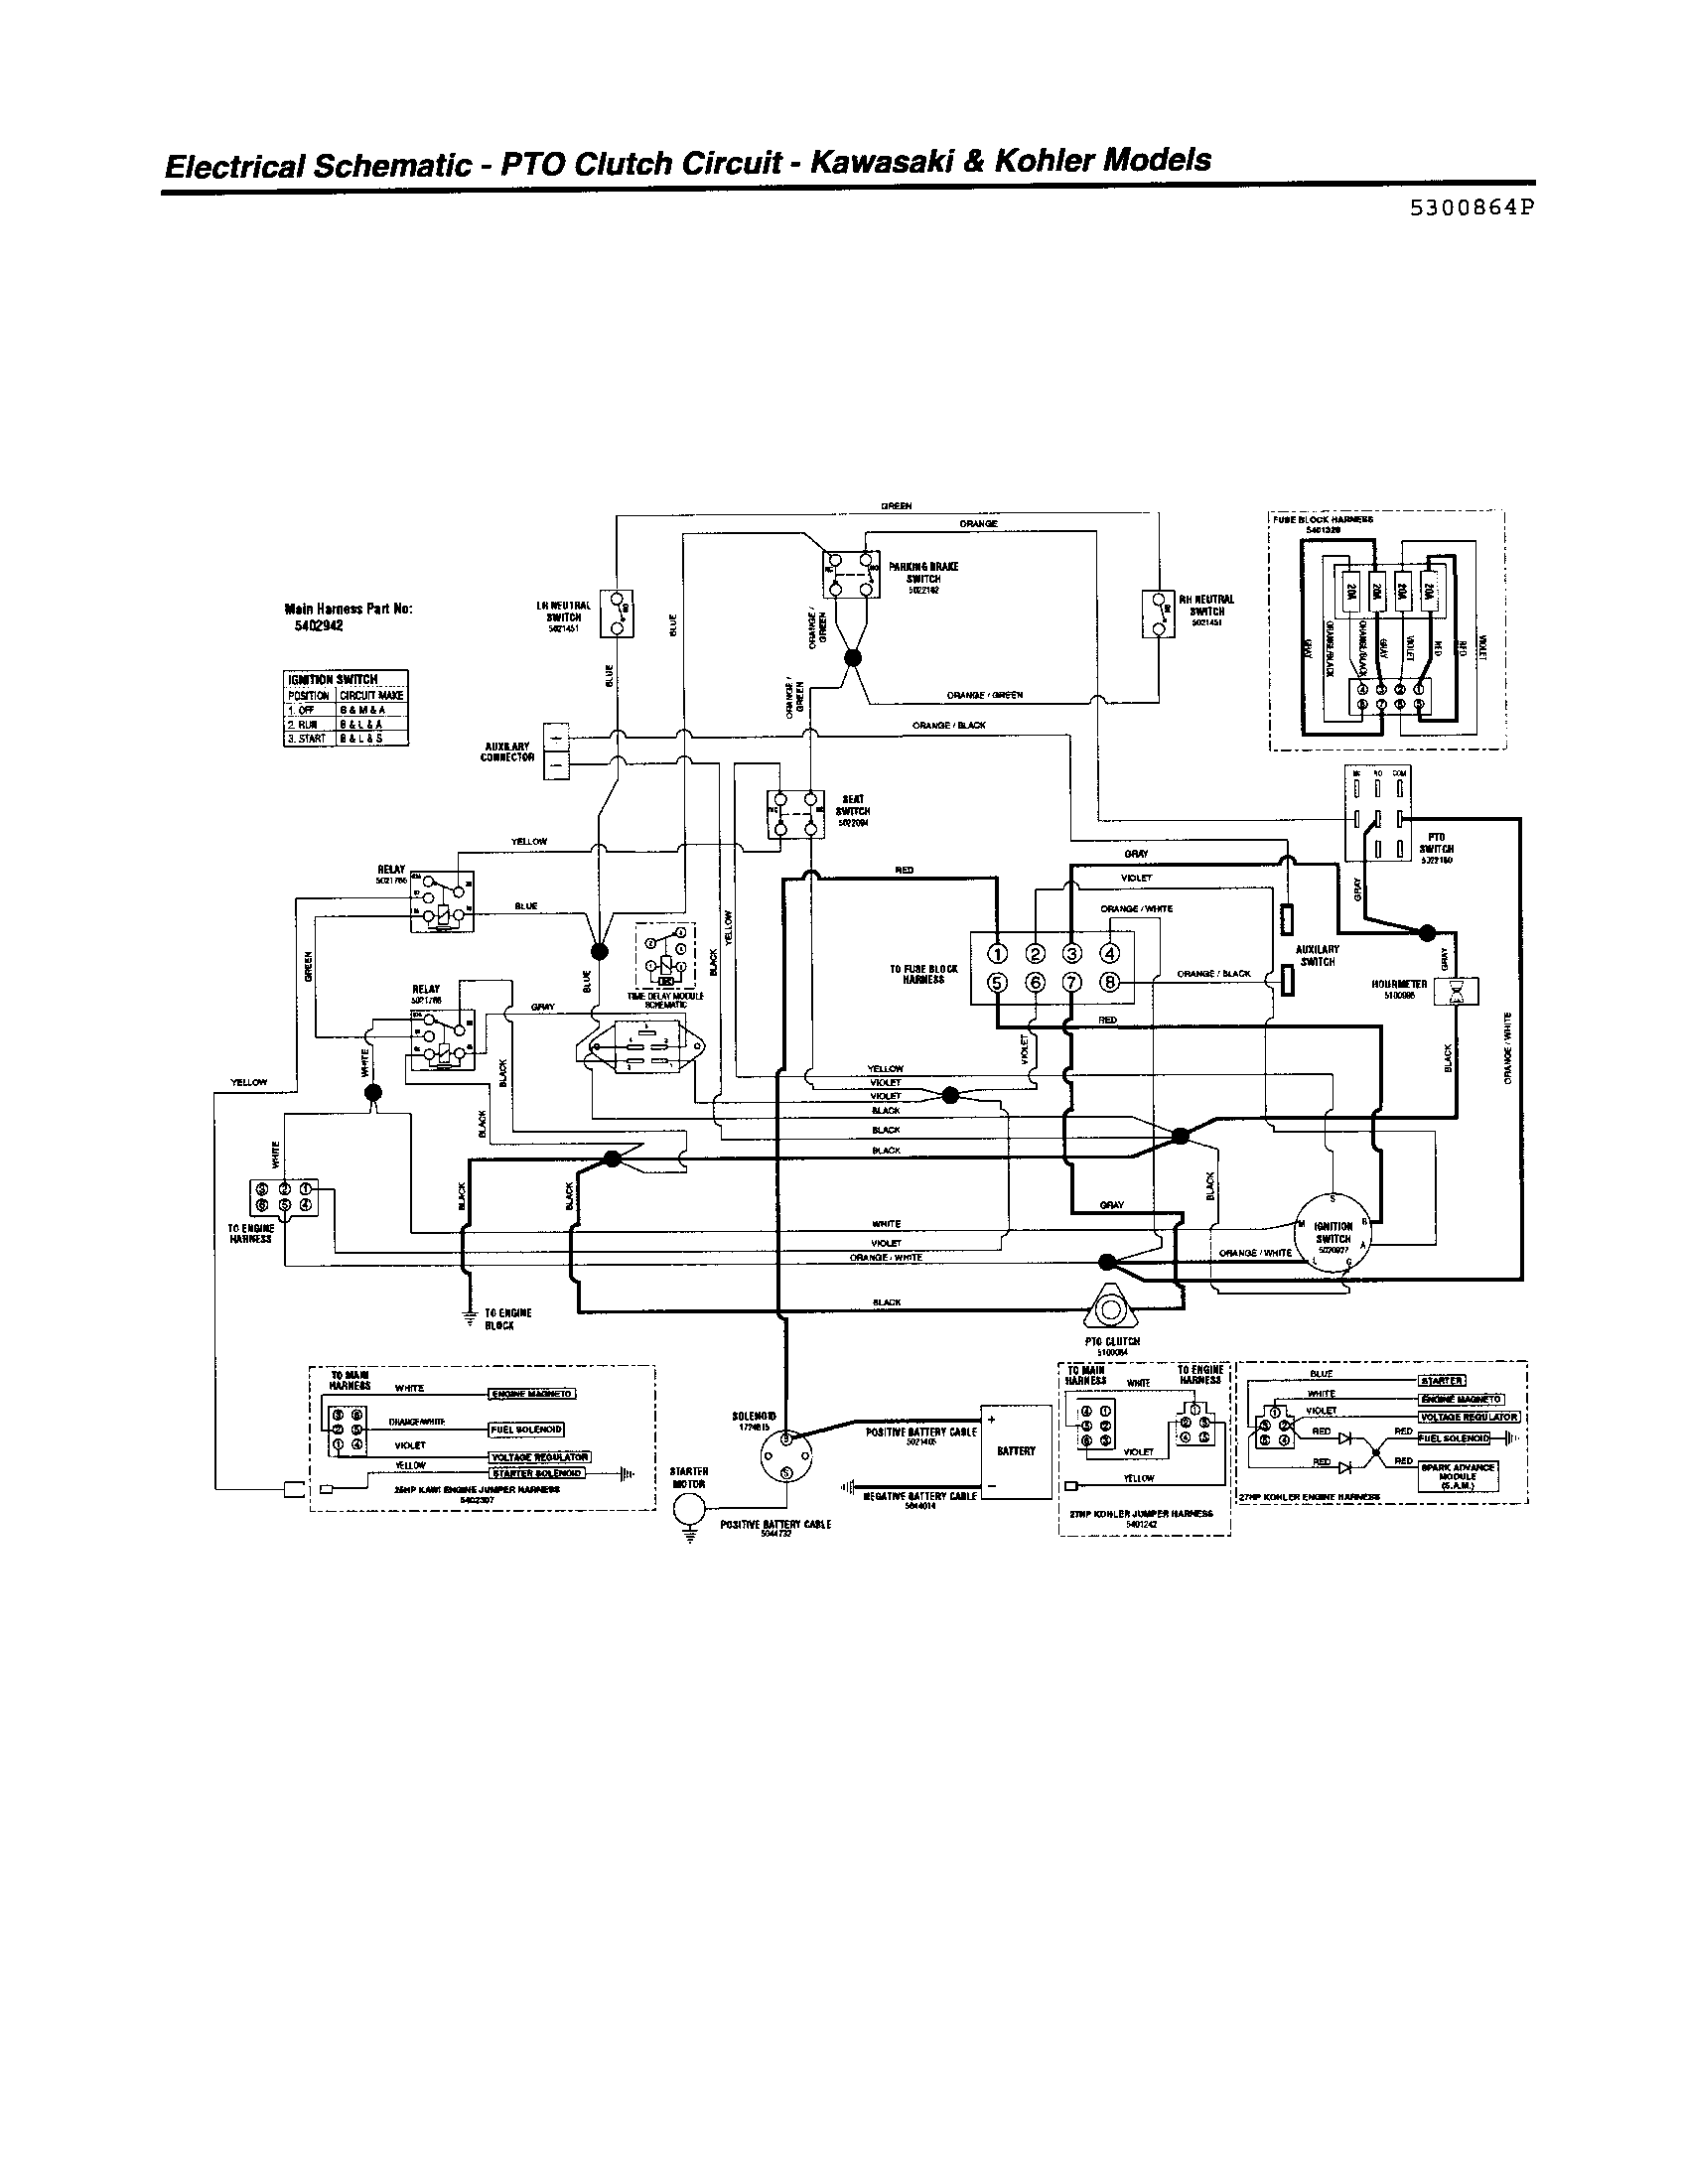 edd203c96939fe65be99faf05b27f9f2 country clipper jazee mowers wiring diagrams country clipper  at pacquiaovsvargaslive.co